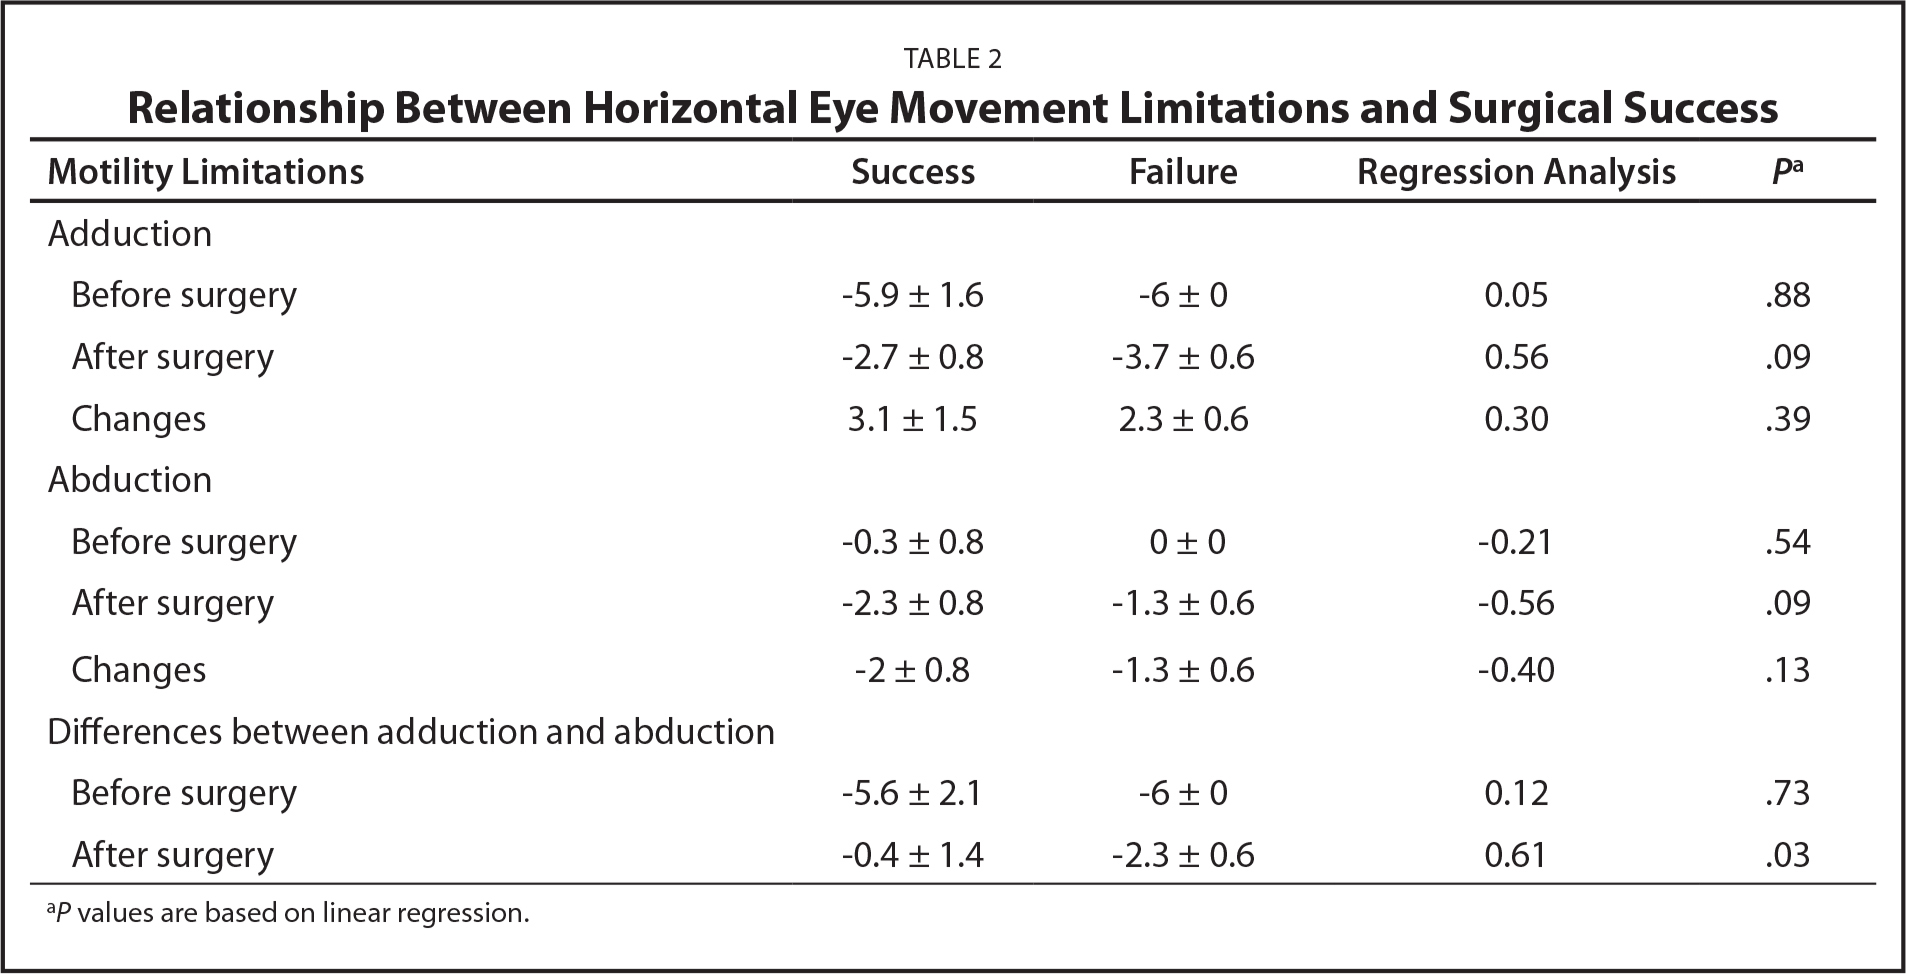 Relationship Between Horizontal Eye Movement Limitations and Surgical Success